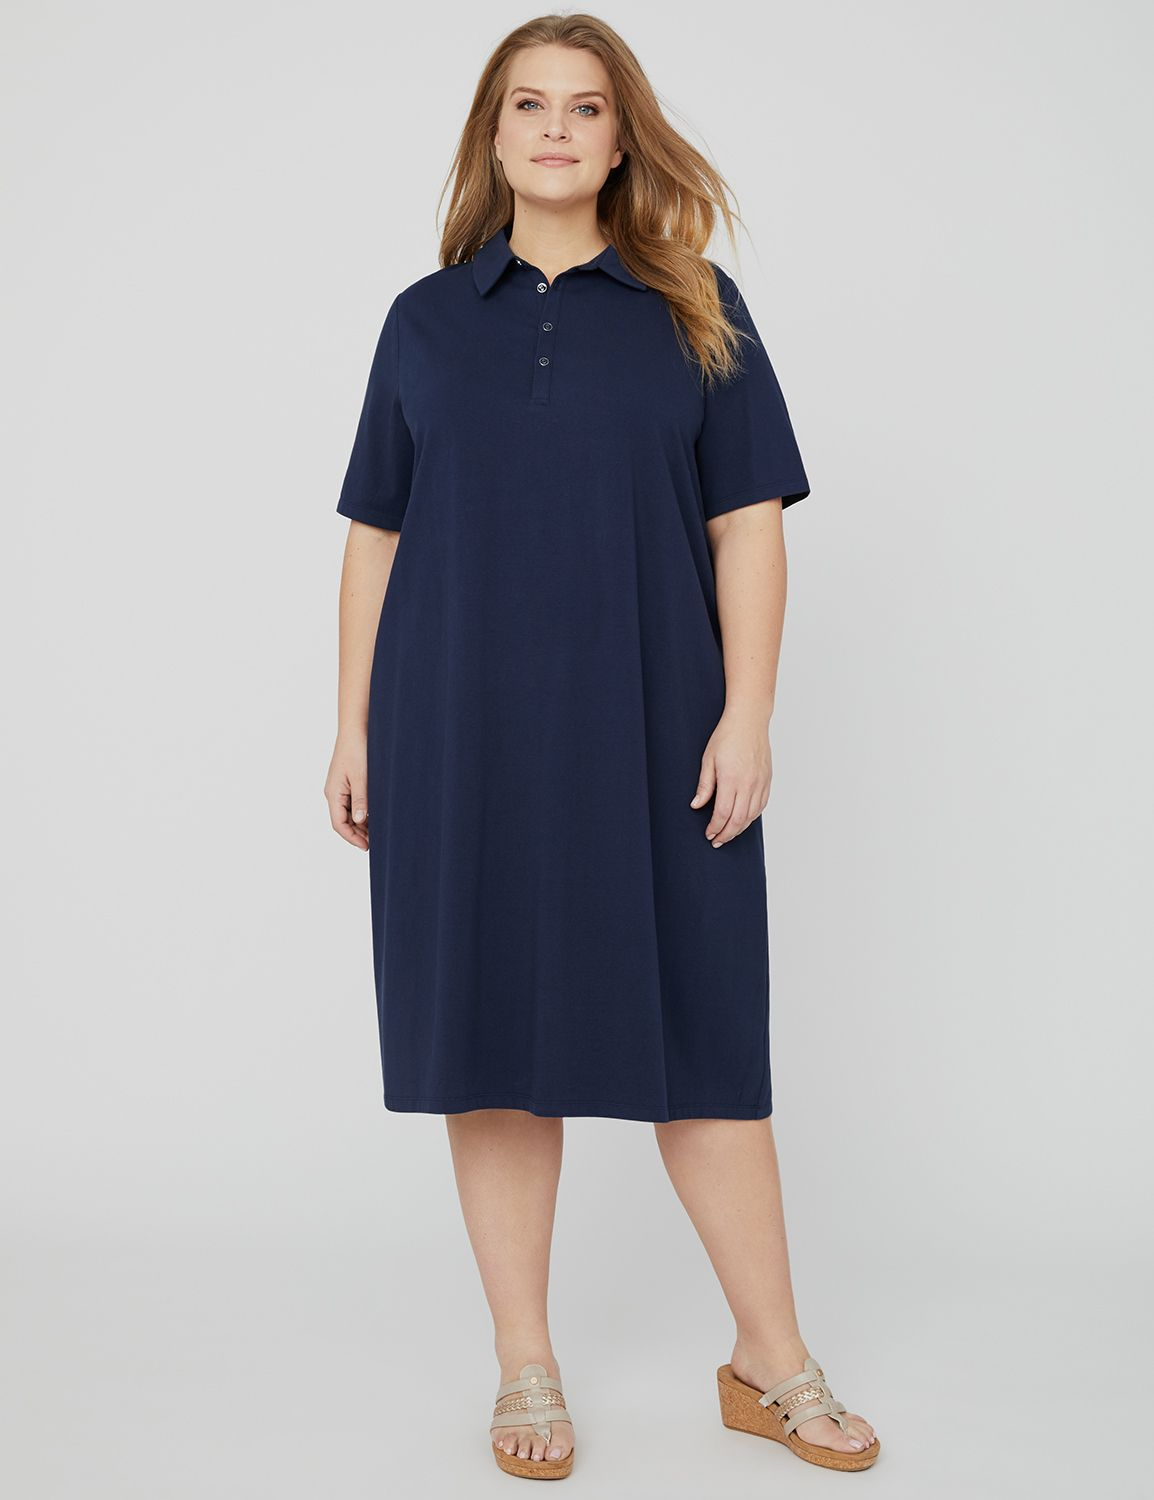 Suprema Polo Dress 1090899 Suprema Polo Dress MP-300105761